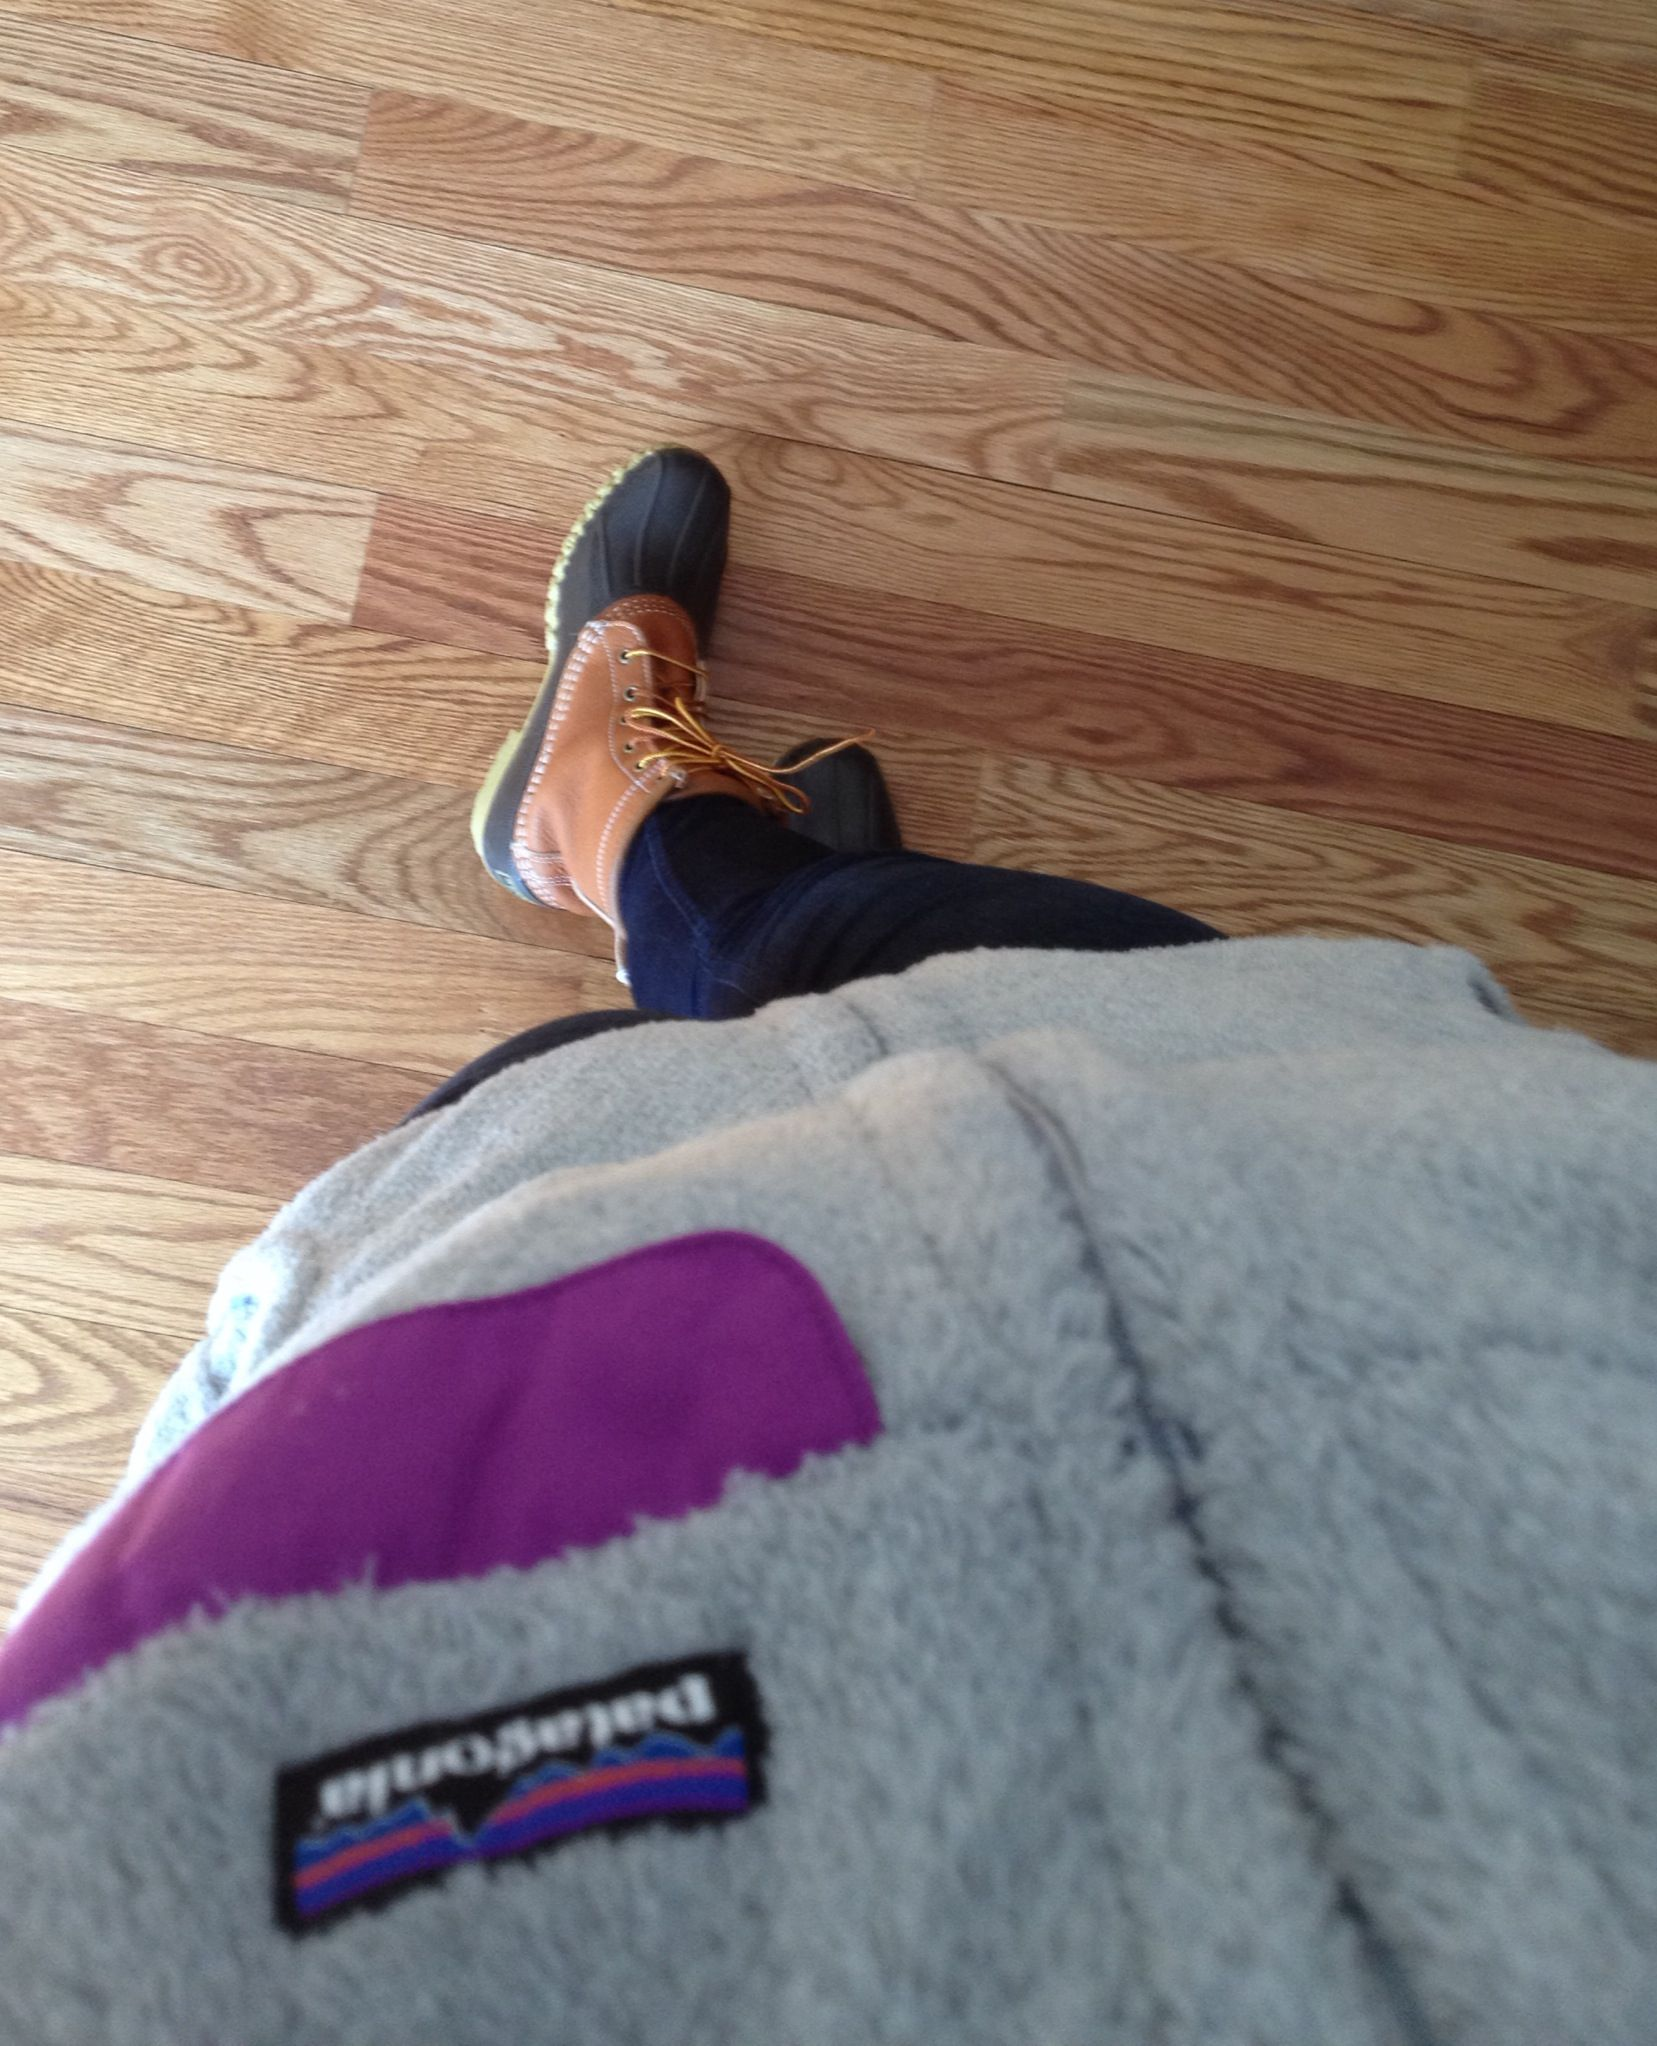 Patagonia fleece vest. Skinny sevens and Bean boots. #beanboots #llbean #patagonia #onlywaytosurviveCTwinters